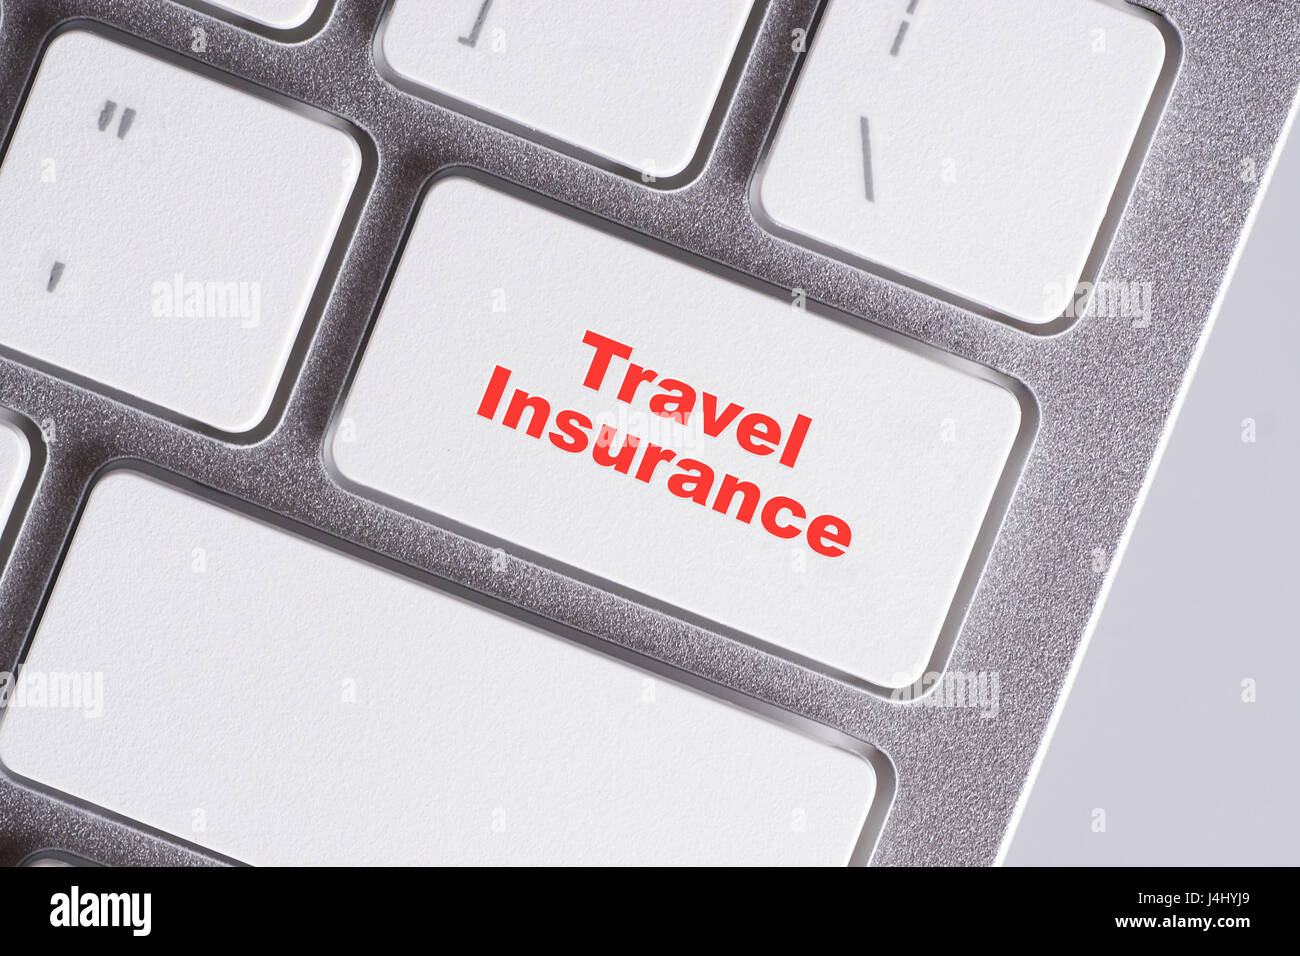 'Travel Insurance' red words on white keyboard - online, education and business concept - Stock Image